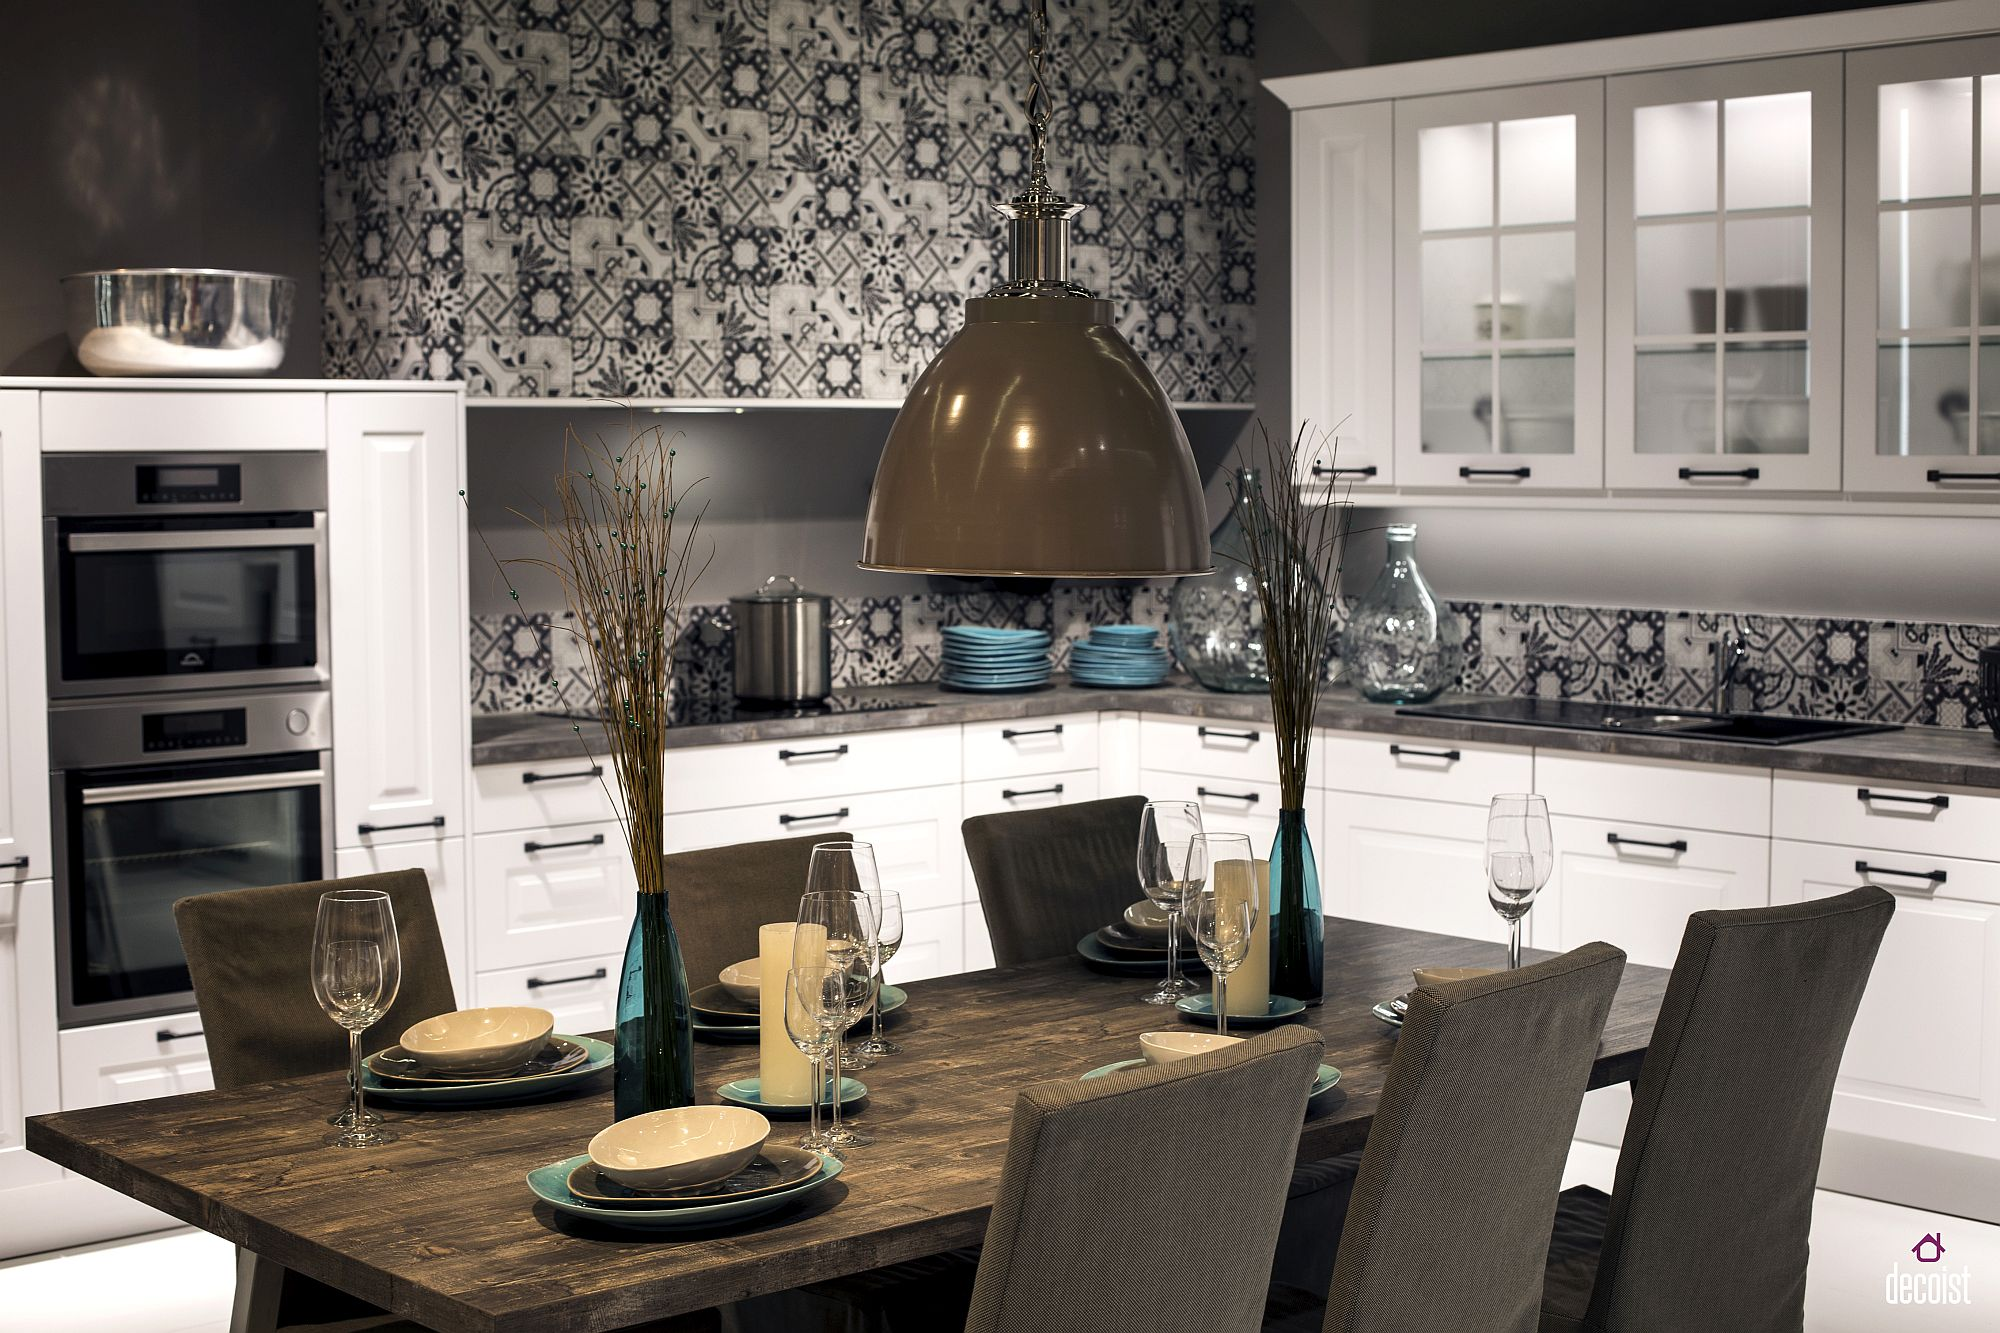 Tiles add pattern to the kitchen without disturbing the color scheme